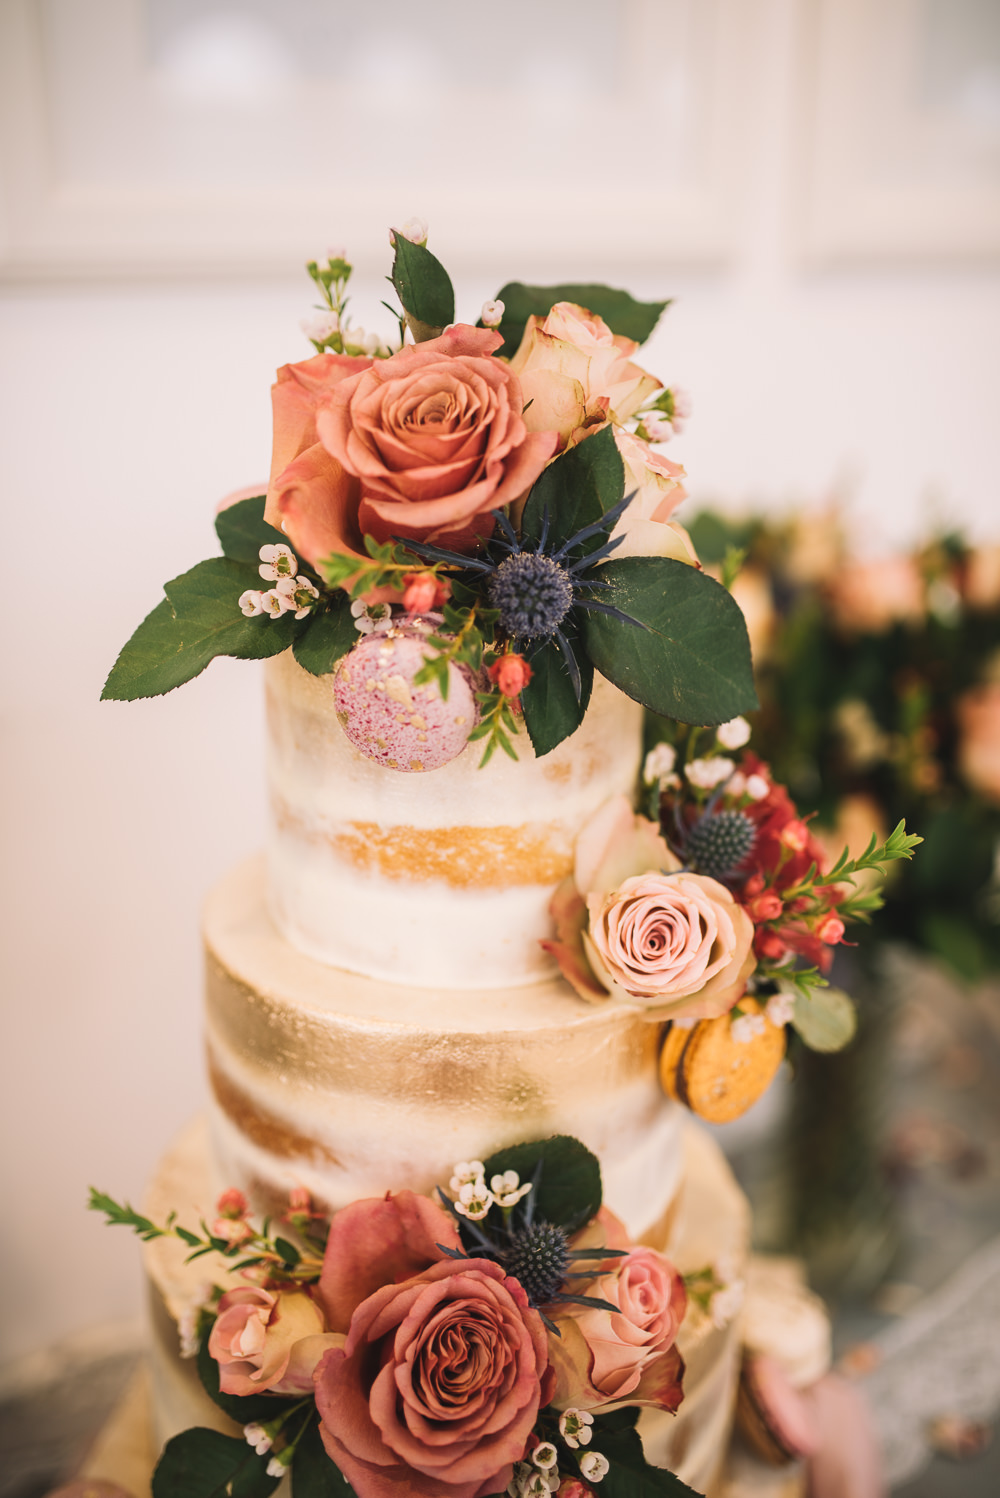 Cake Tall Tiers Gold Buttercream Flowers Macaron Irnham Hall Wedding Lucie Watson Photography